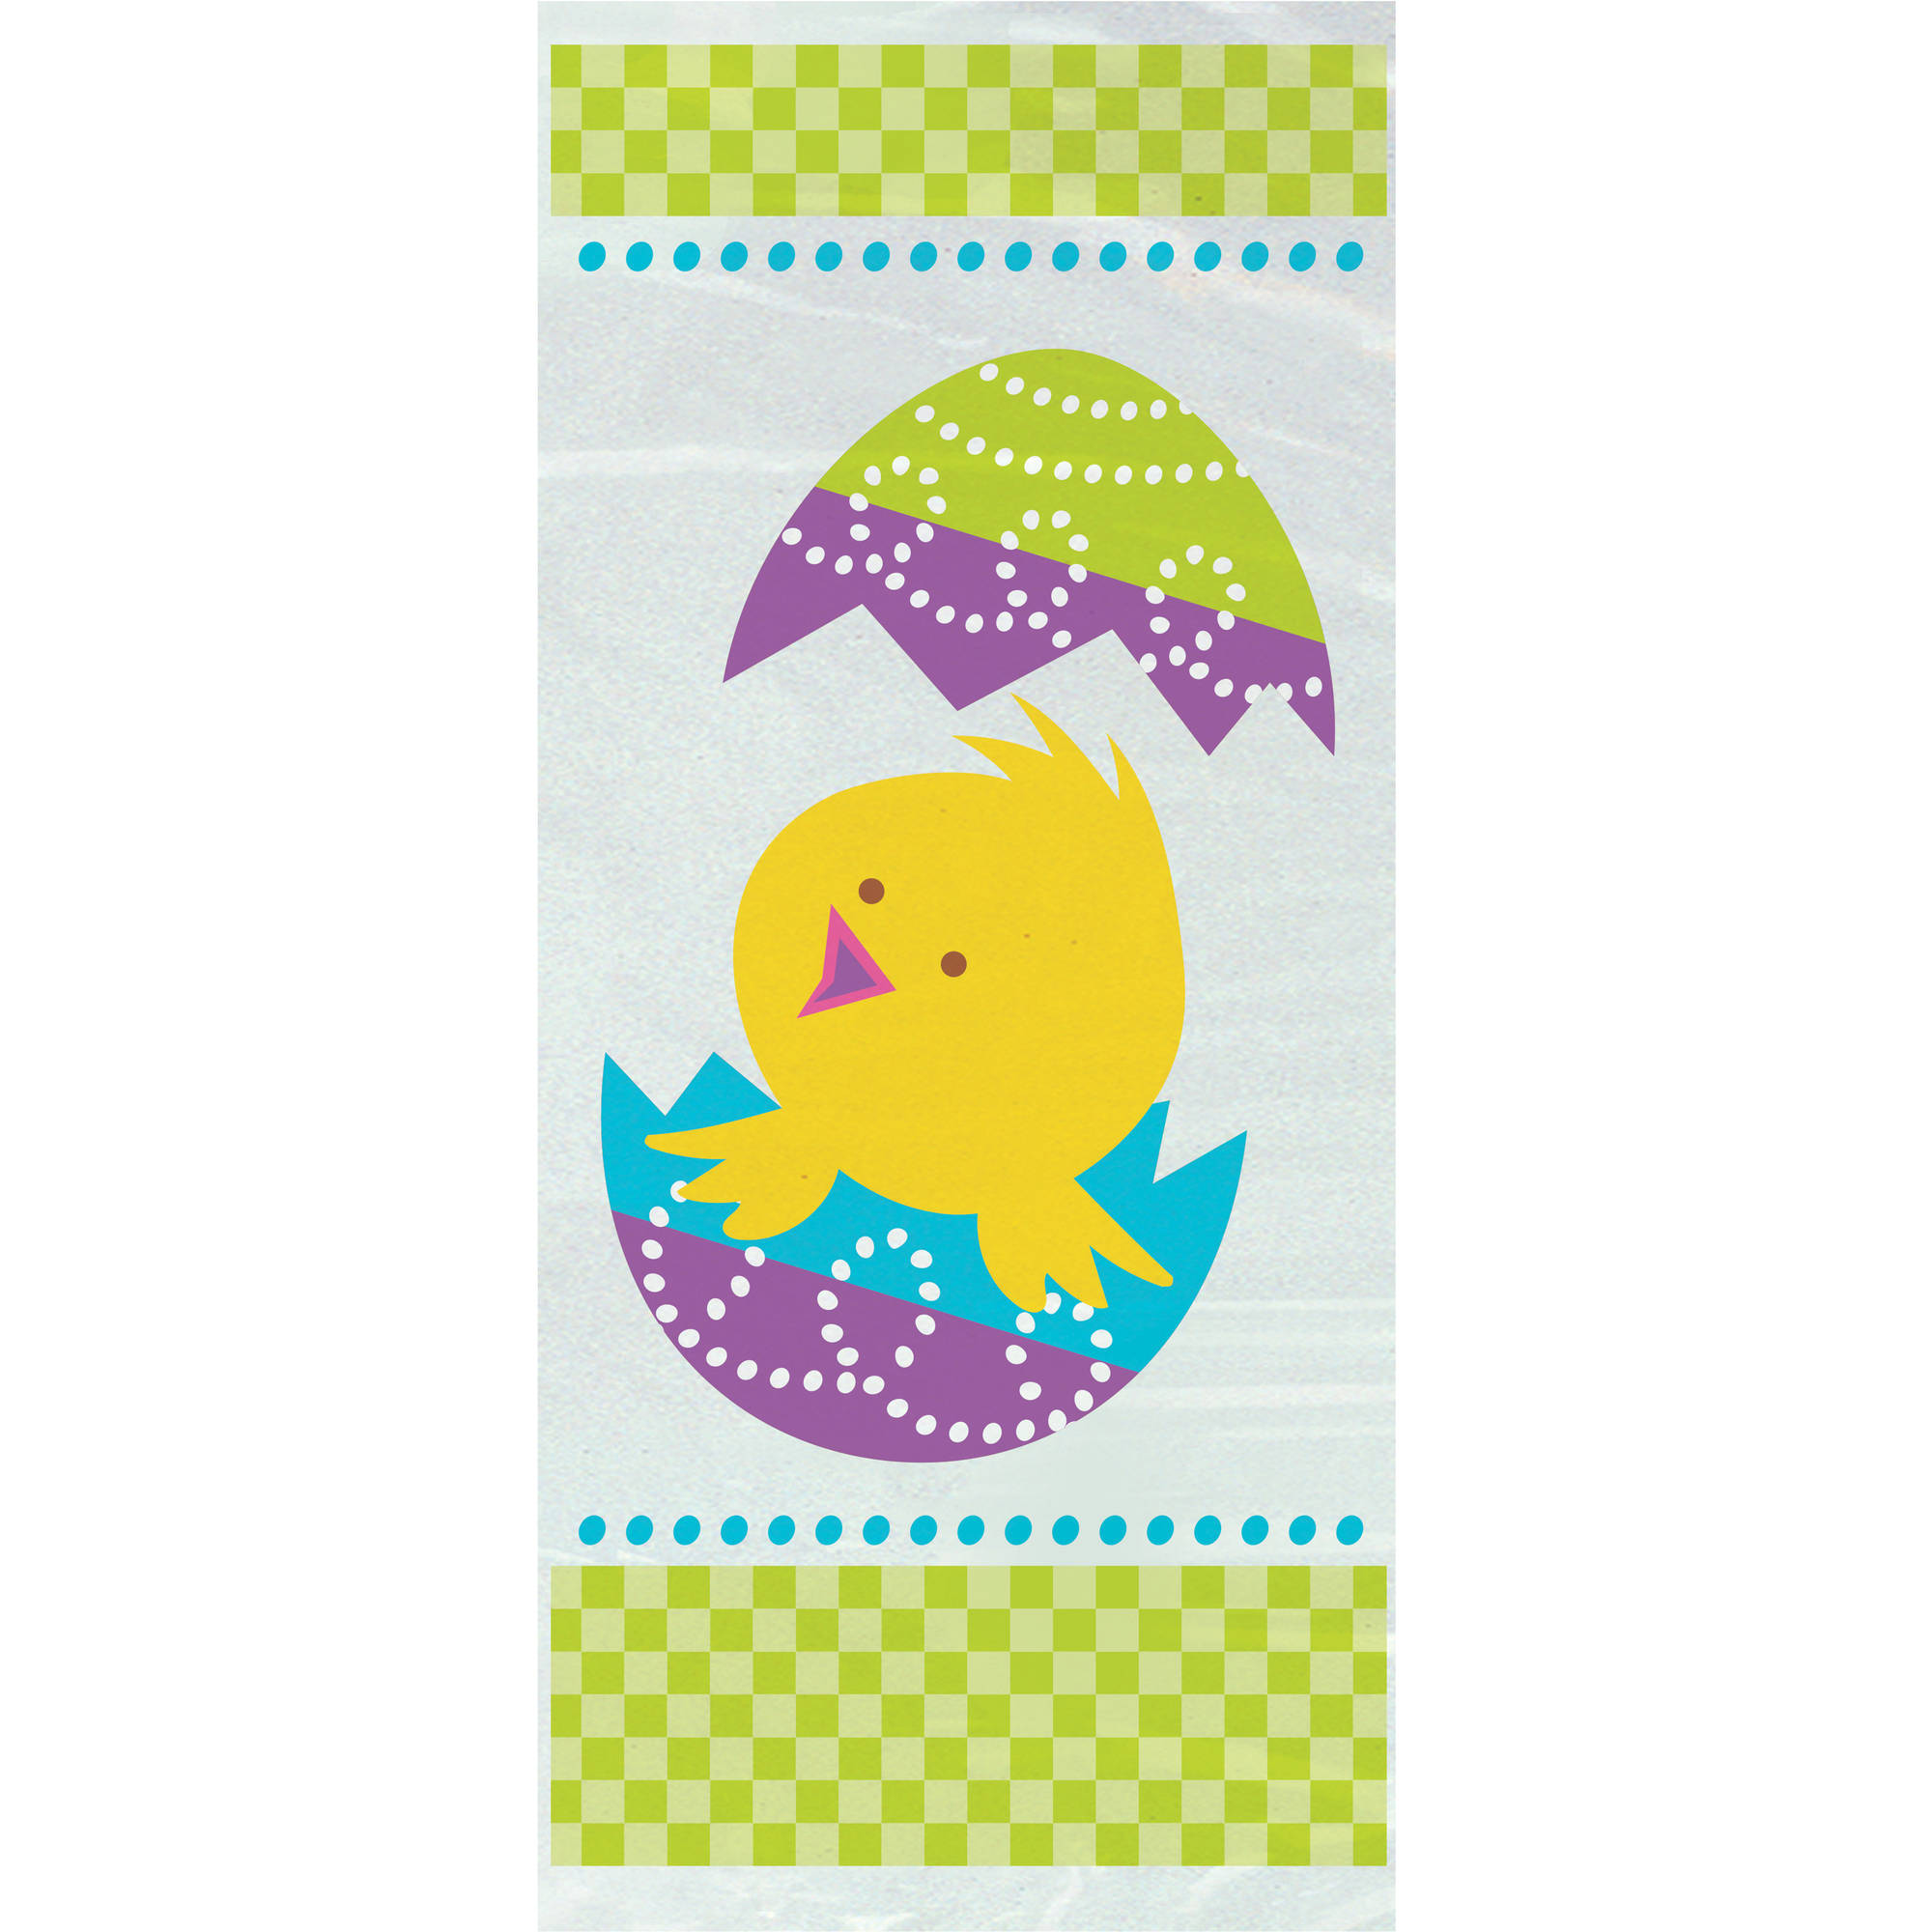 Spring Chick Easter Cellophane Bags, 20ct